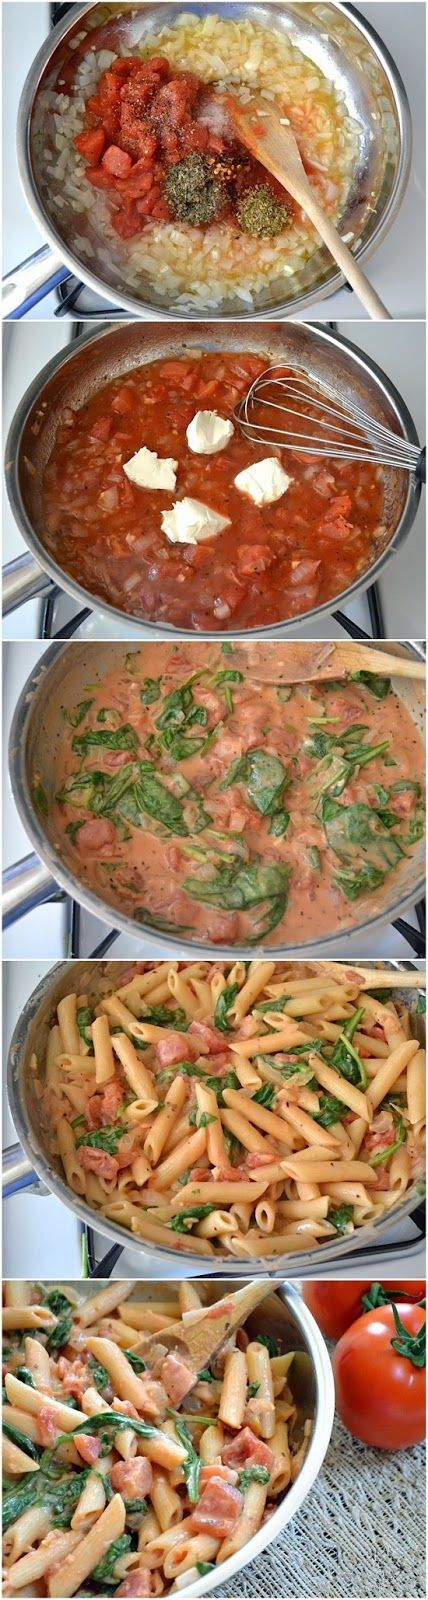 Creamy Tomato And Spinach Pasta This was so yummy and basic. add mushrooms & white beans for a delicious meatless dinner that is very filling.